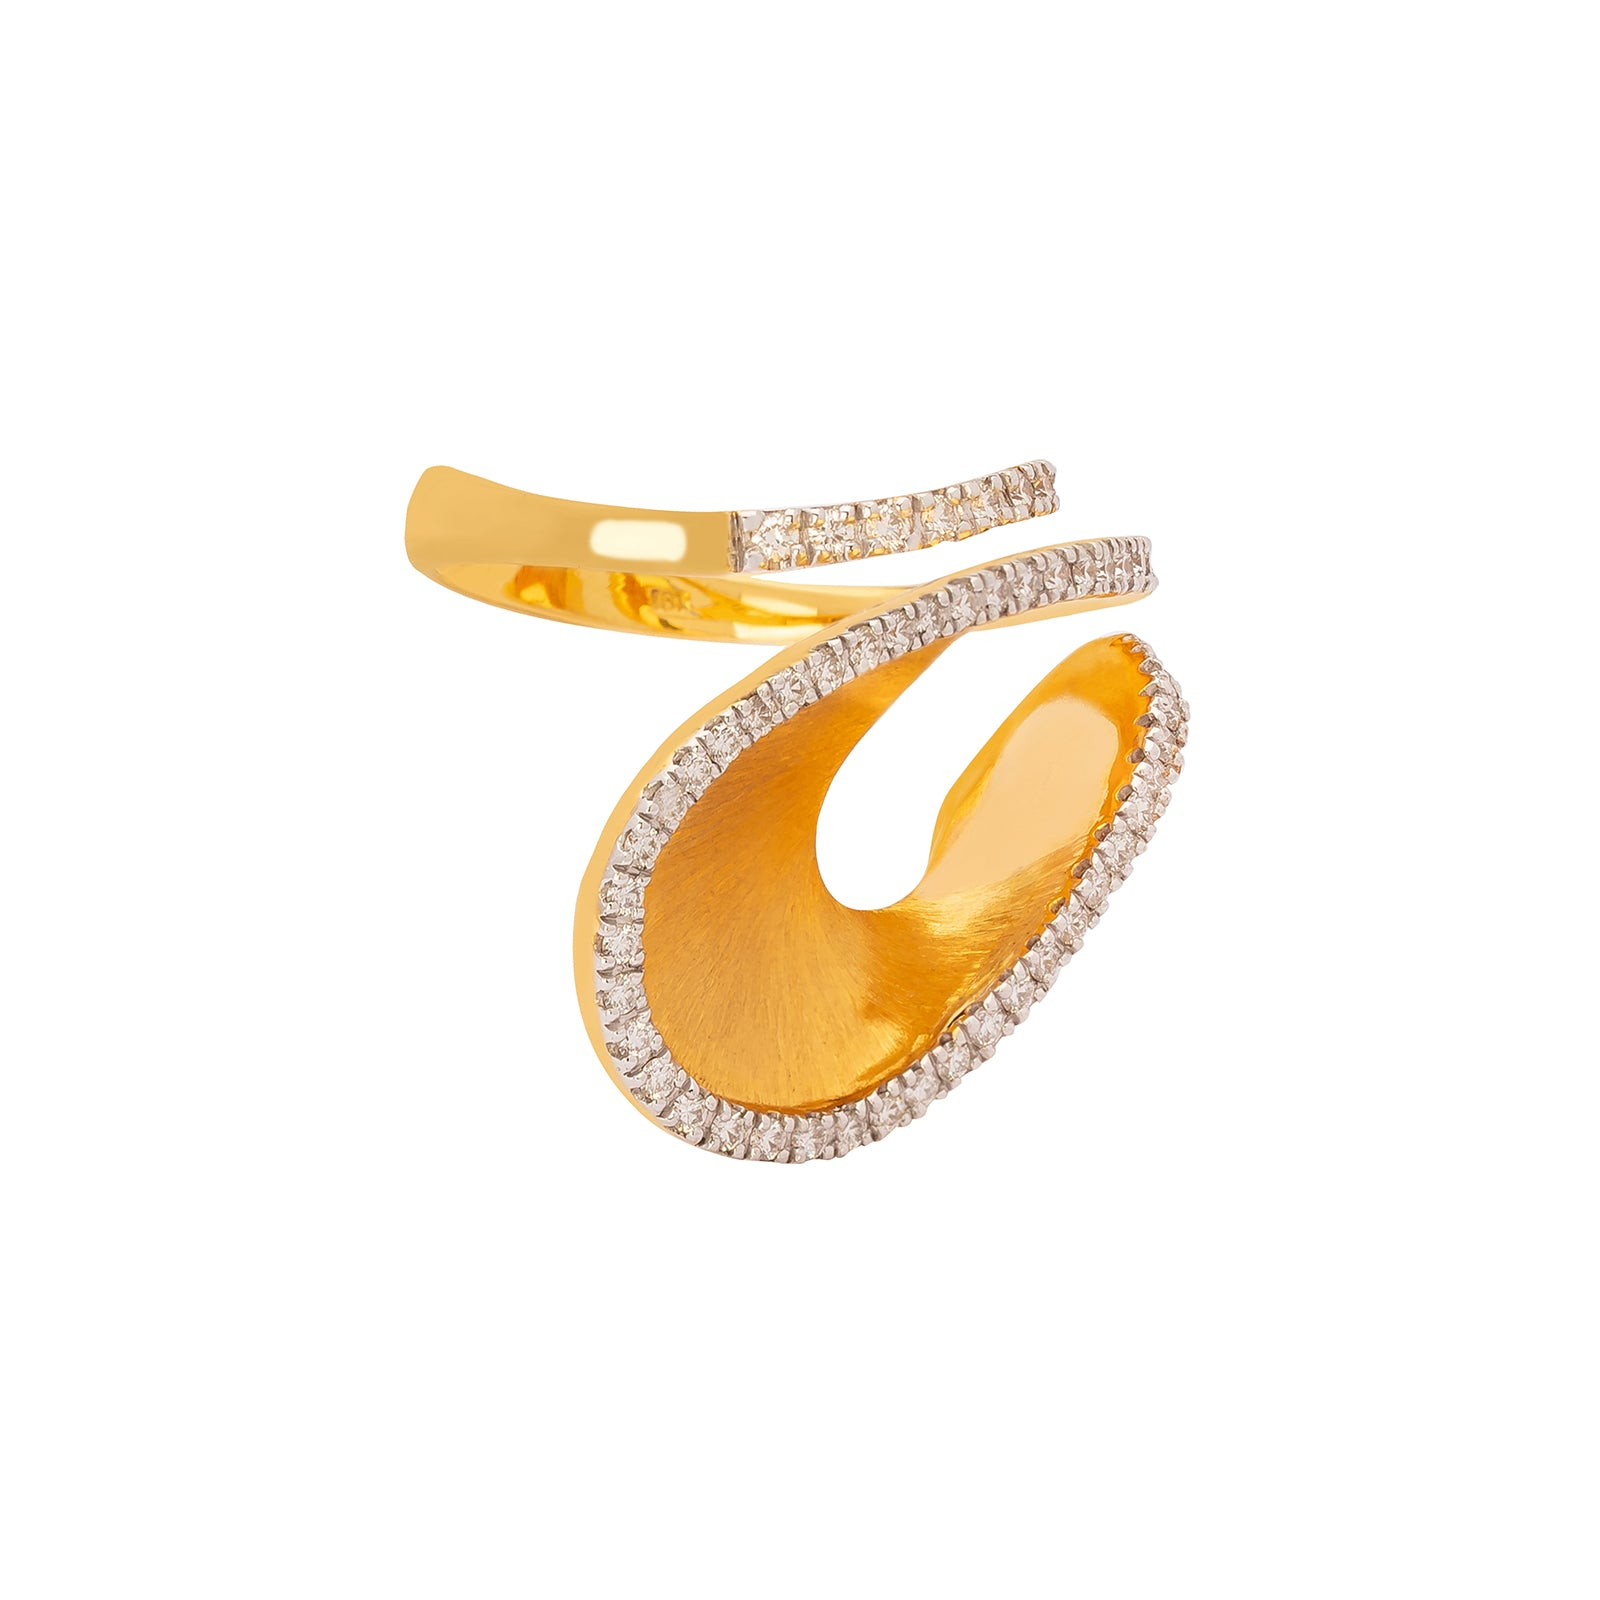 Kavant & Sharart Talay Dancing Wave Ring - White Diamonds - Rings - Broken English Jewelry